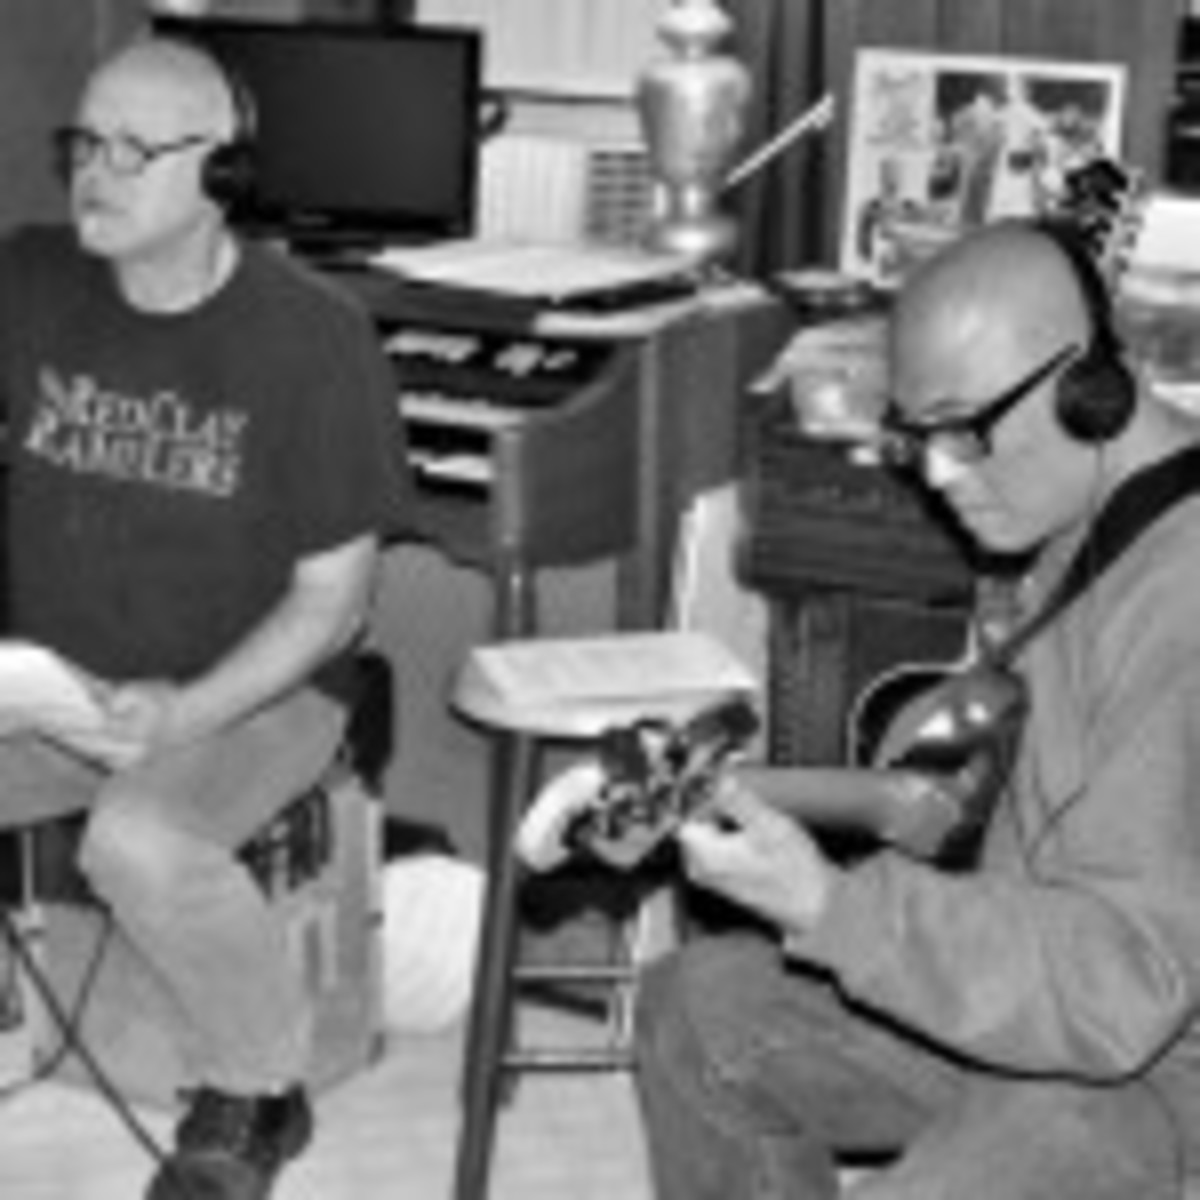 Severo Jornacion overdubs a bass line during a Dec. 13 recording session for the upcoming Smithereens album, which is being produced by Don Dixon (left). (Photo by Chris M. Junior)